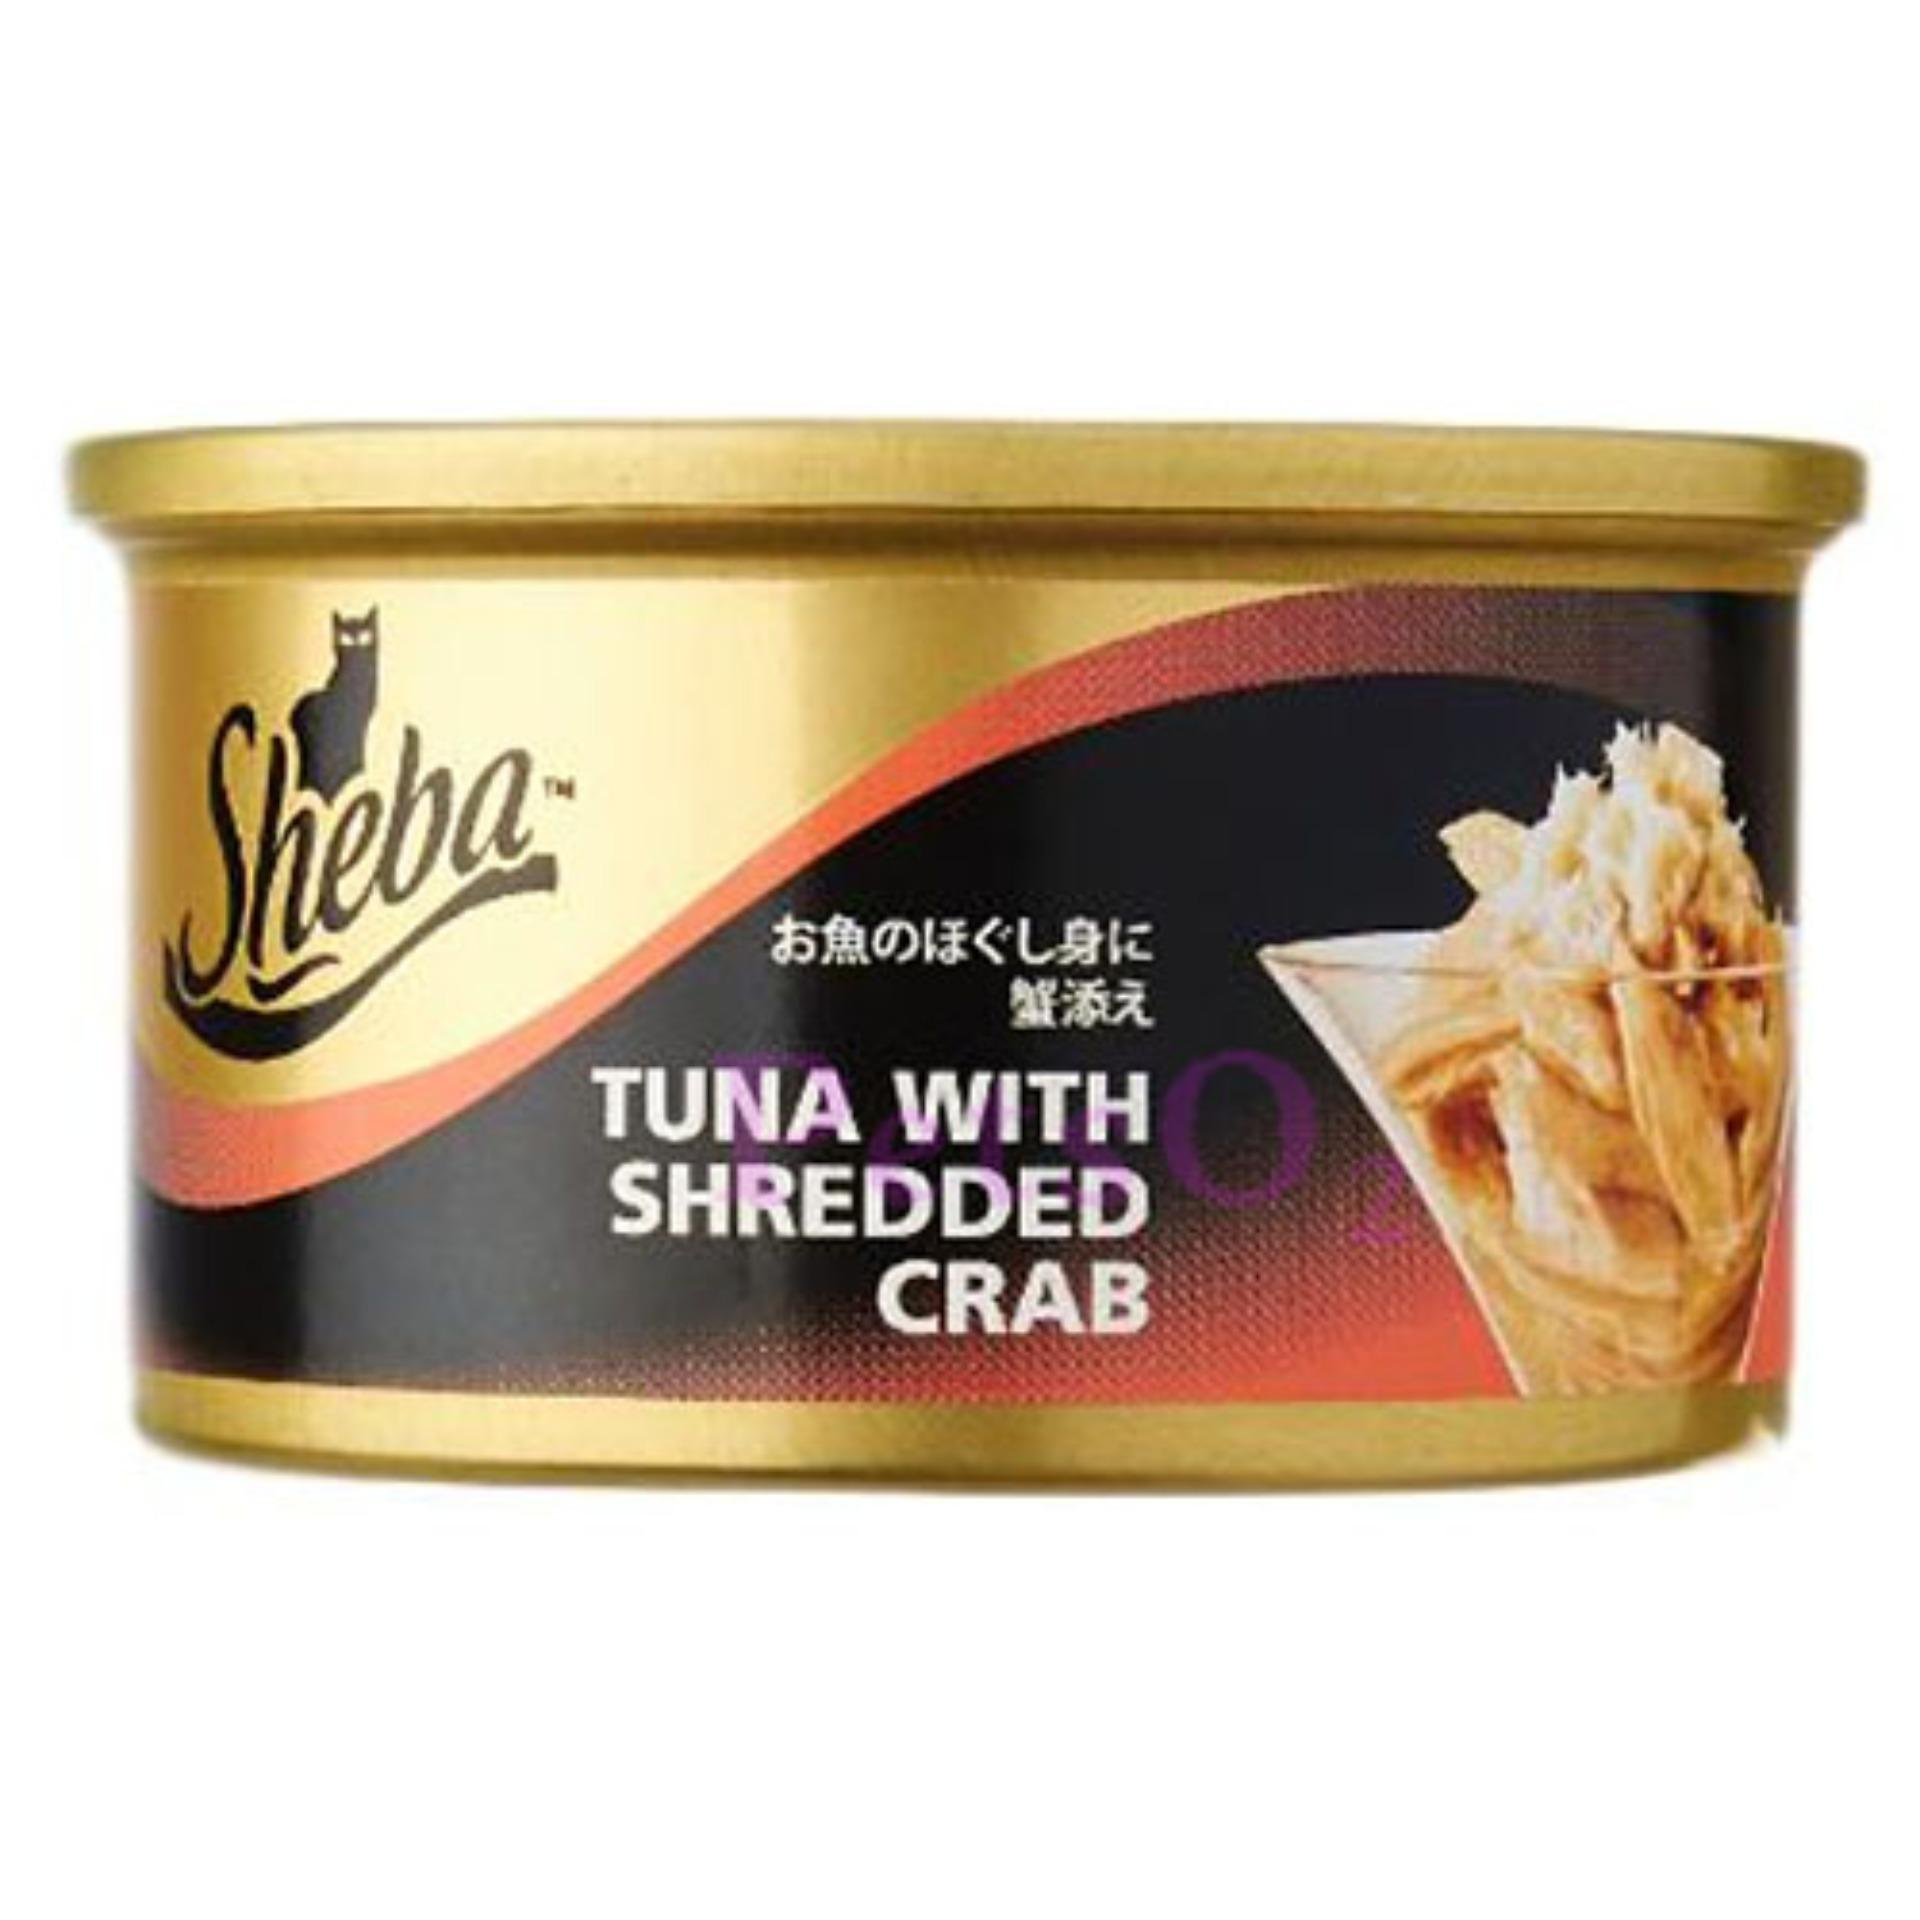 Price Sheba Tuna With Shredded Crab 85G X24 Cans Sheba Original